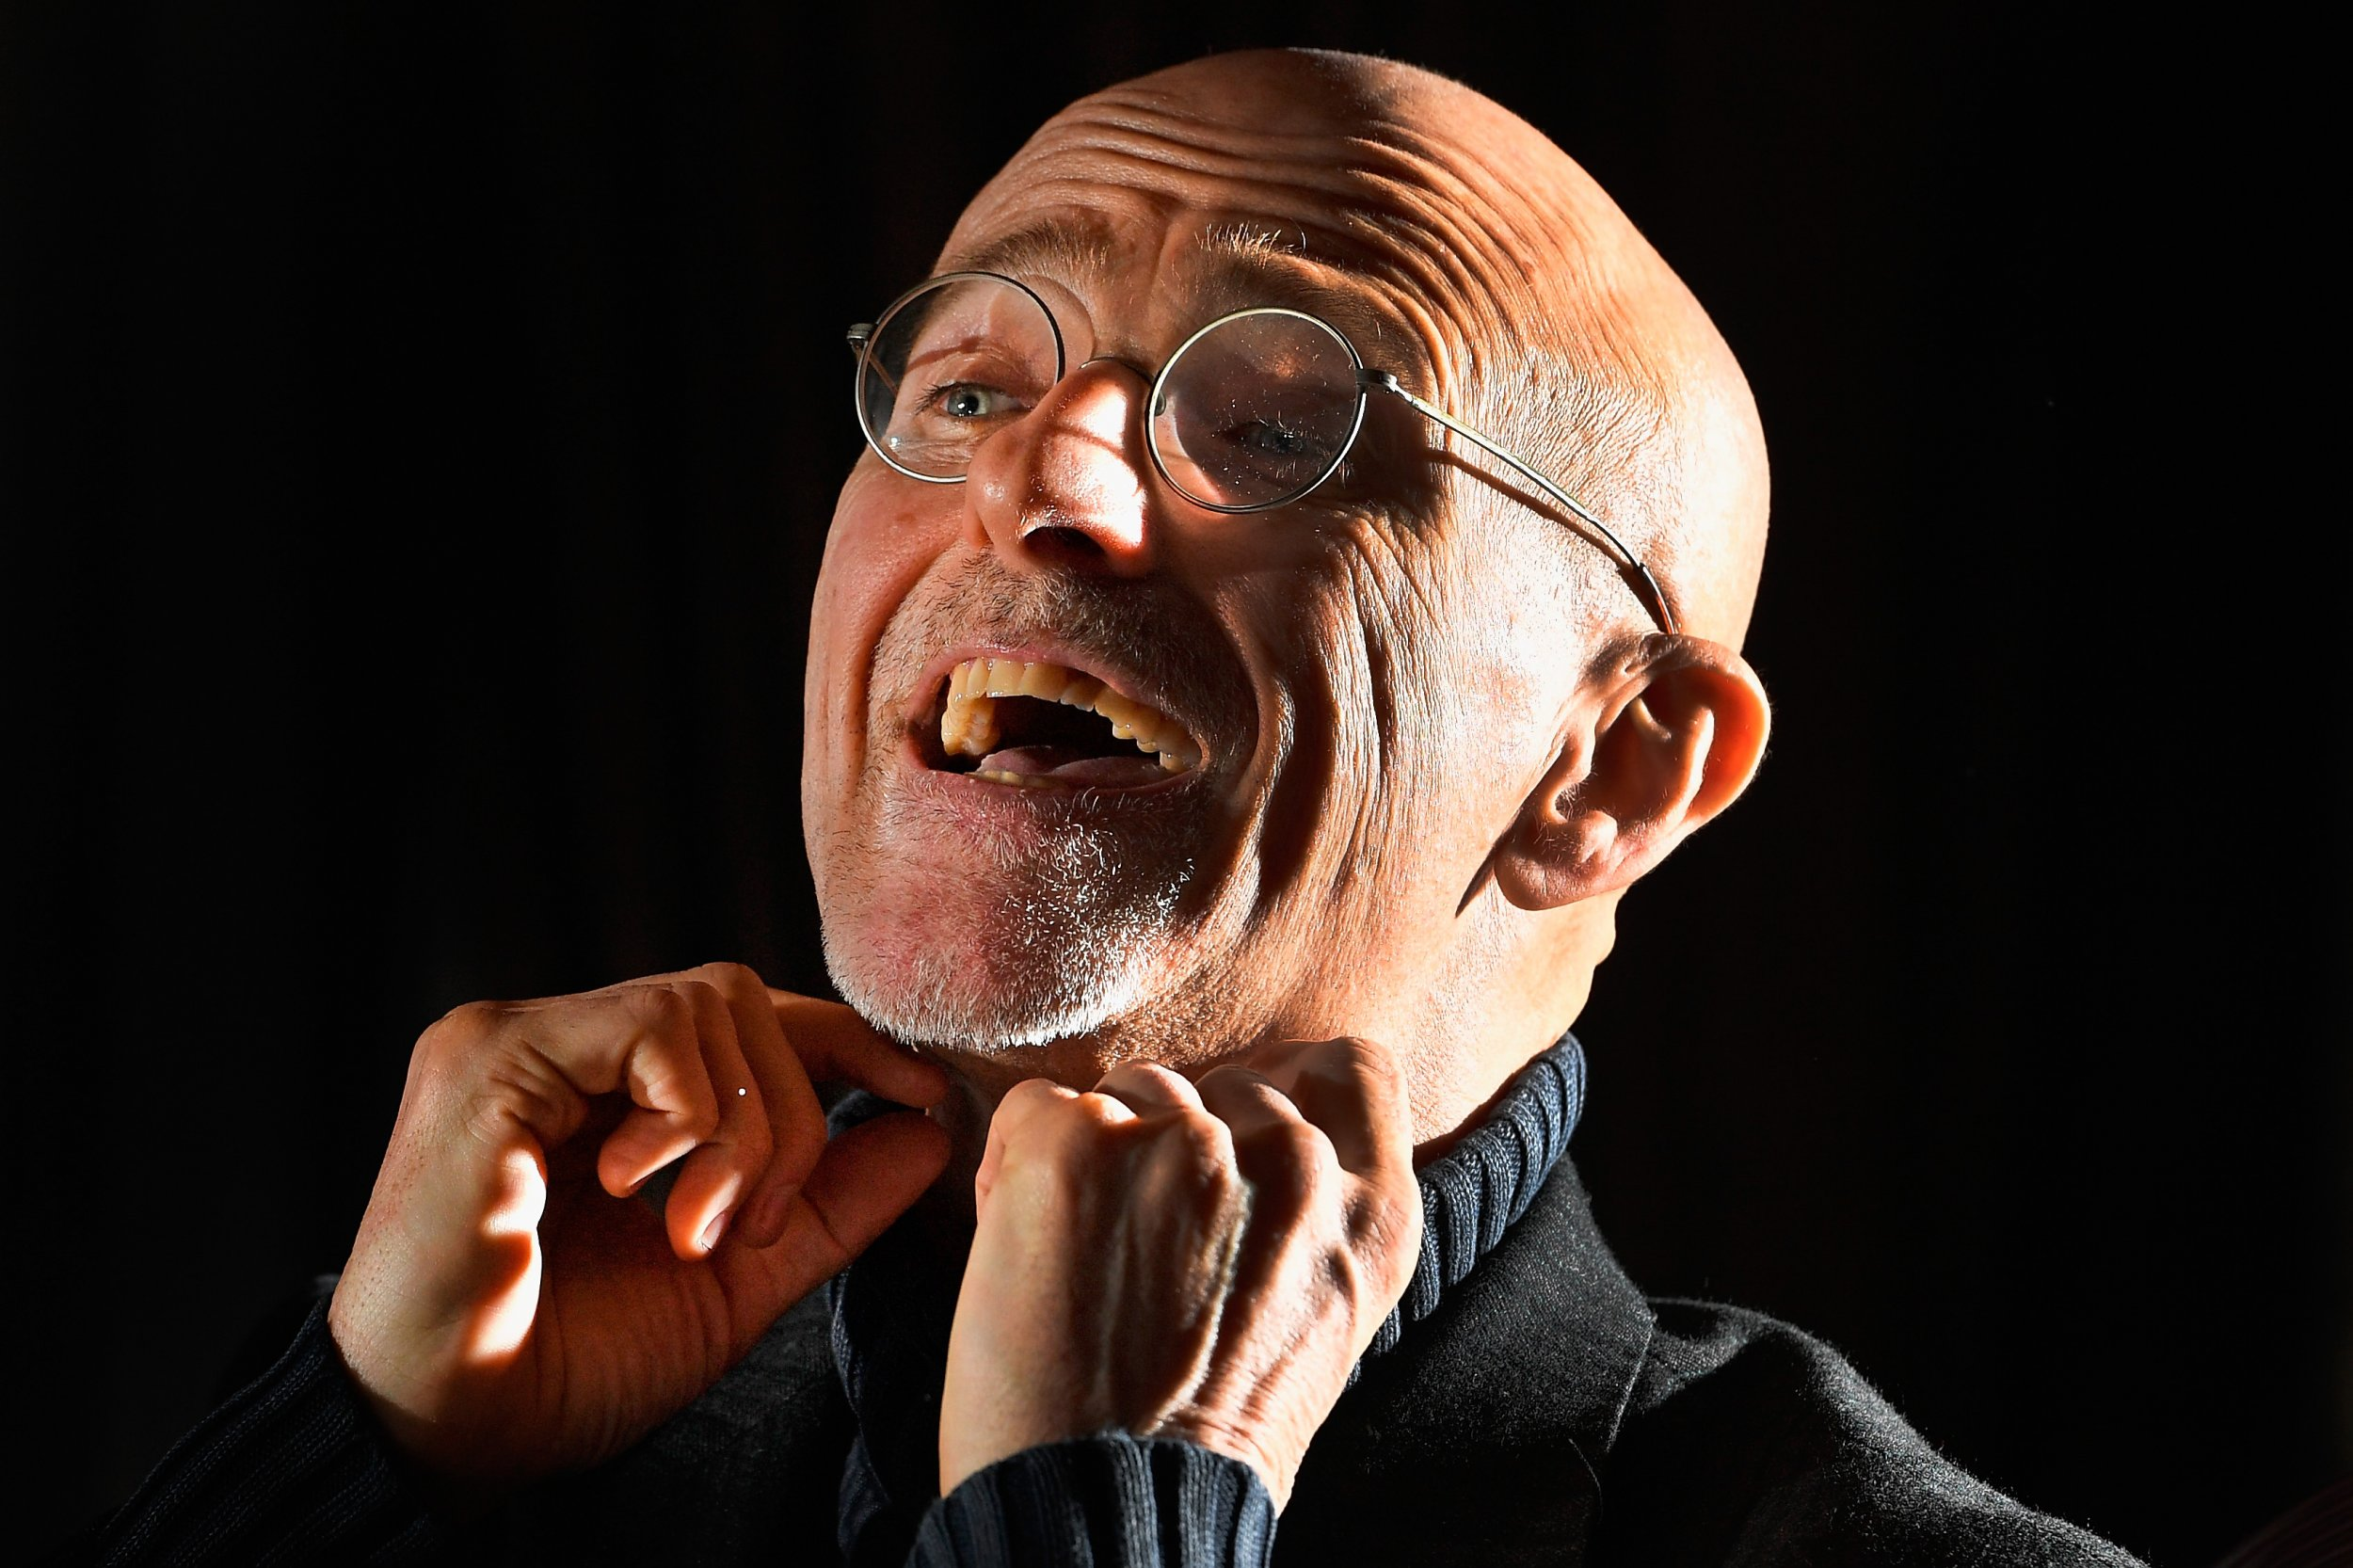 The first human head transplant has been performed on a corpse